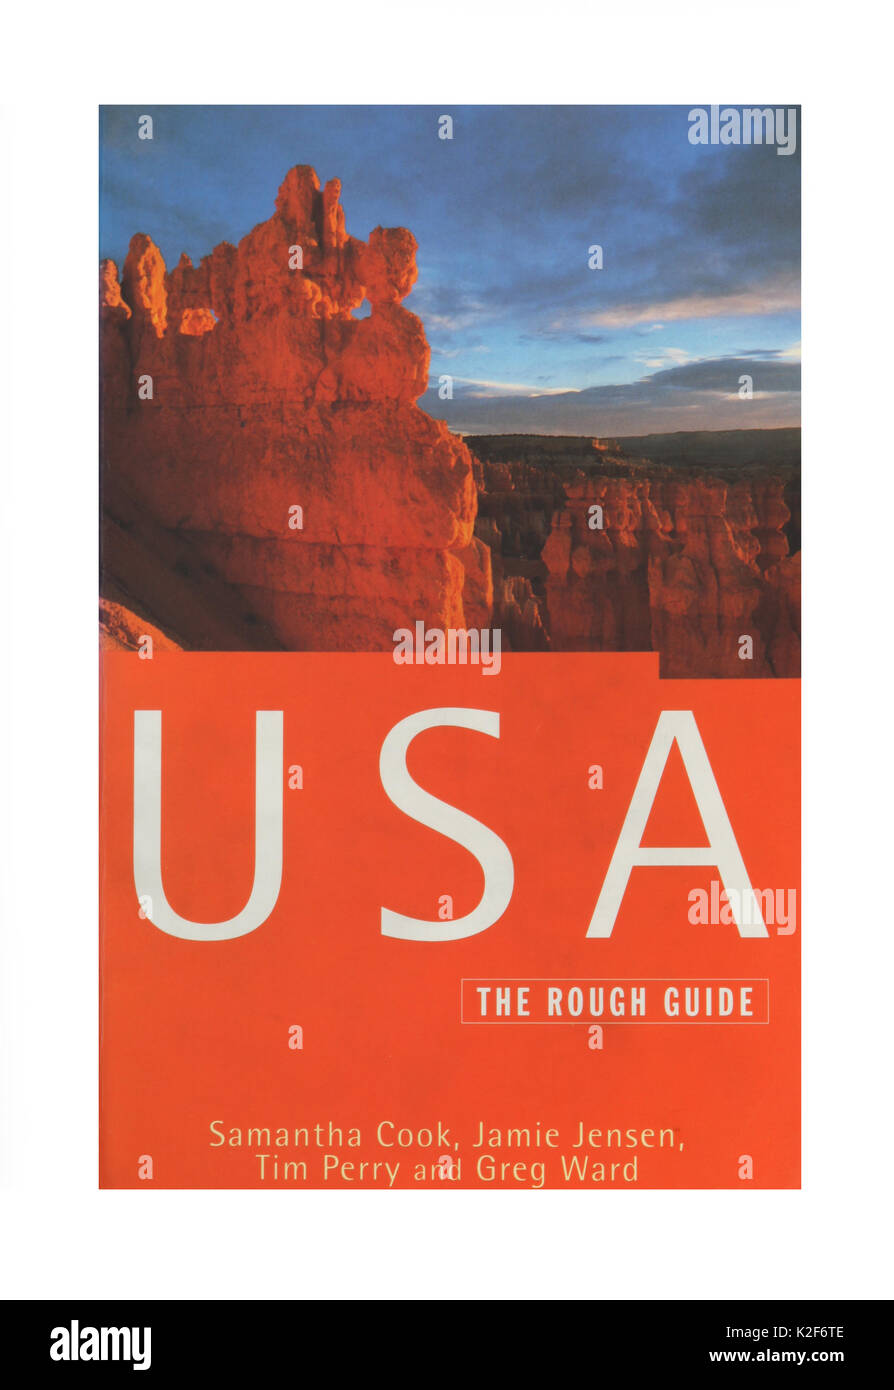 The travel guide, USA, The Rough Guide. - Stock Image